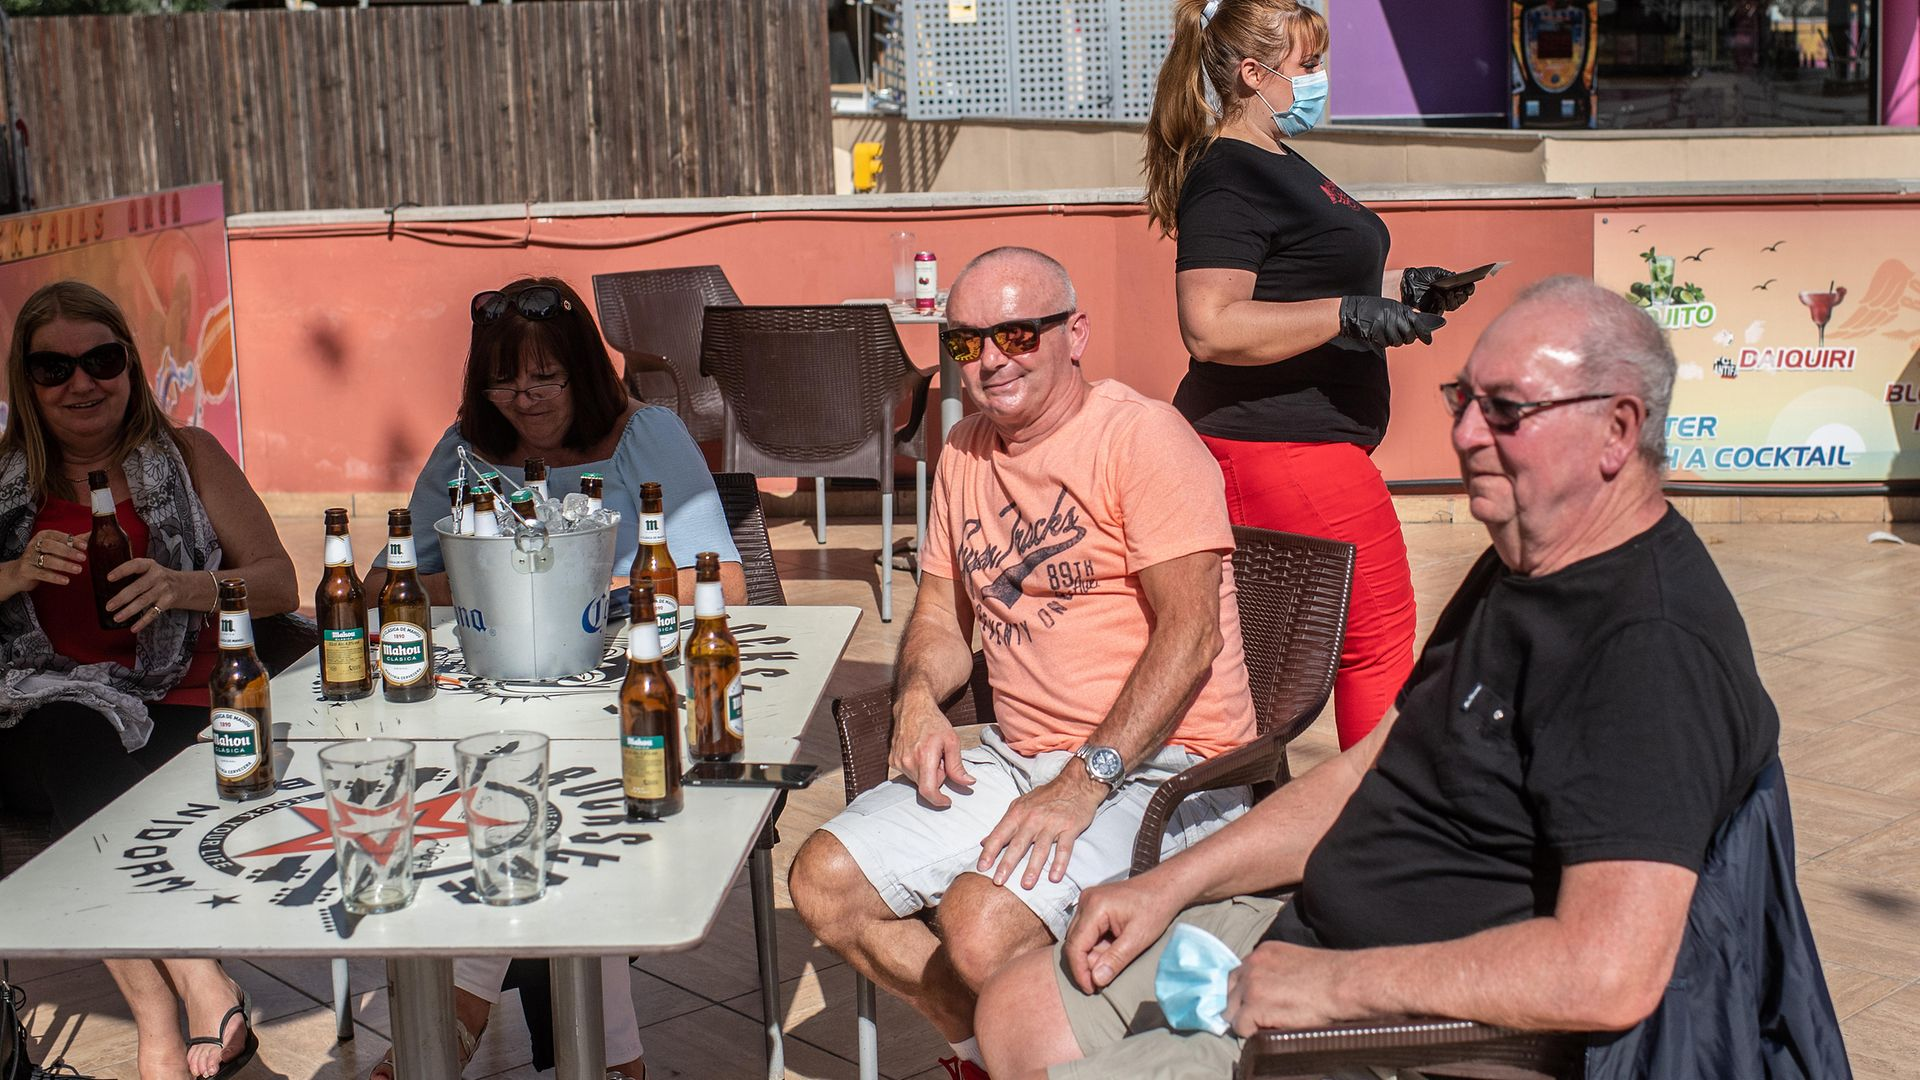 British ex-pats enjoy a drink in Benidorm, May 2020 - Credit: Photo by David Ramos/Getty Images